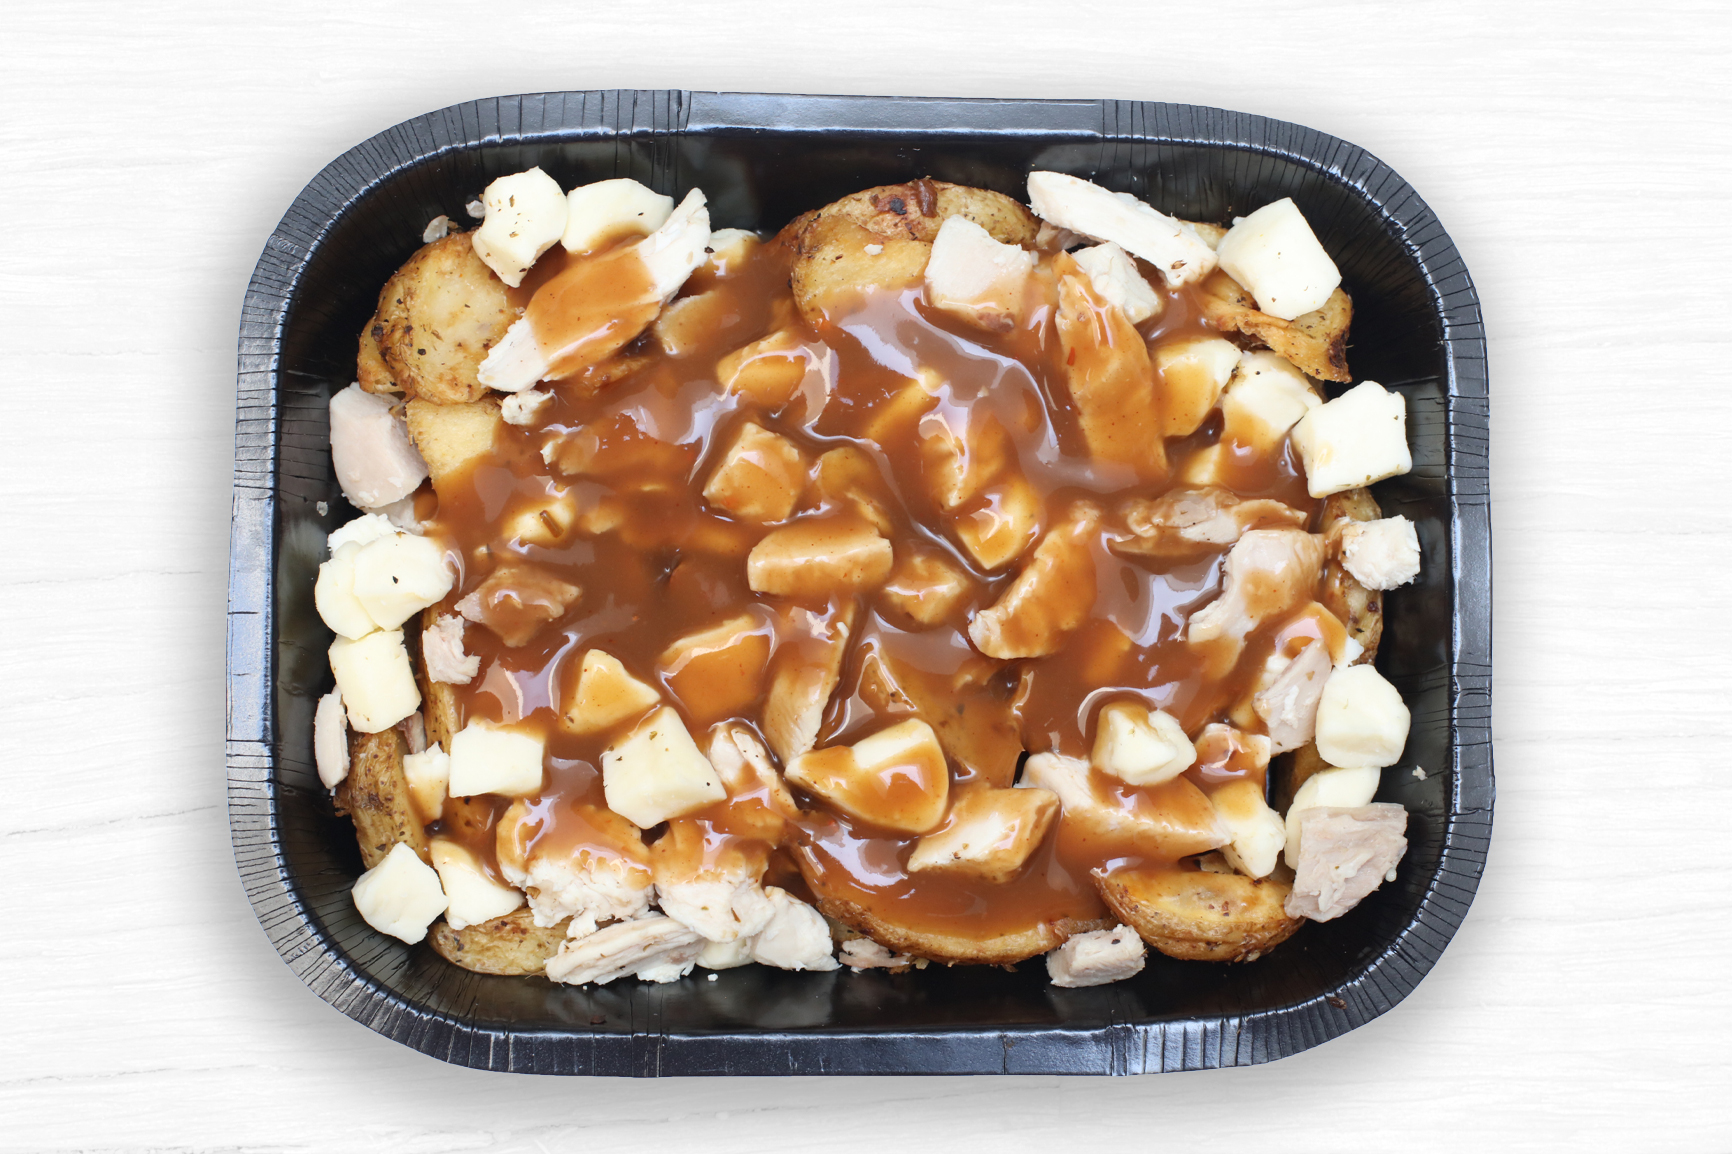 CHICKEN POUTINE